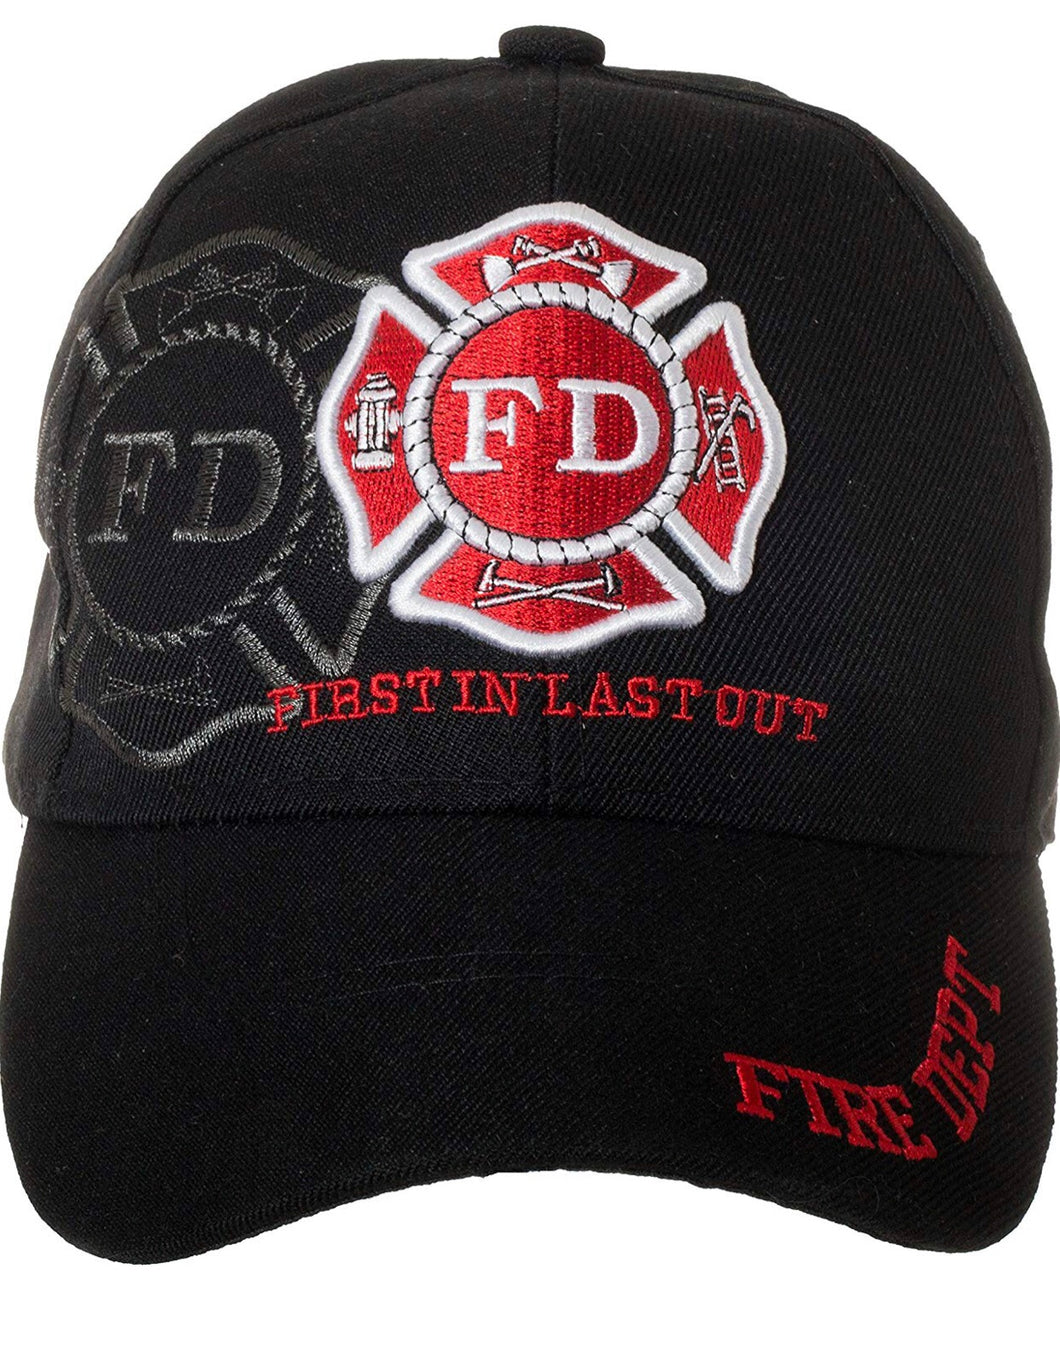 Fire Department First in Last Out embroidered Hat / Cap